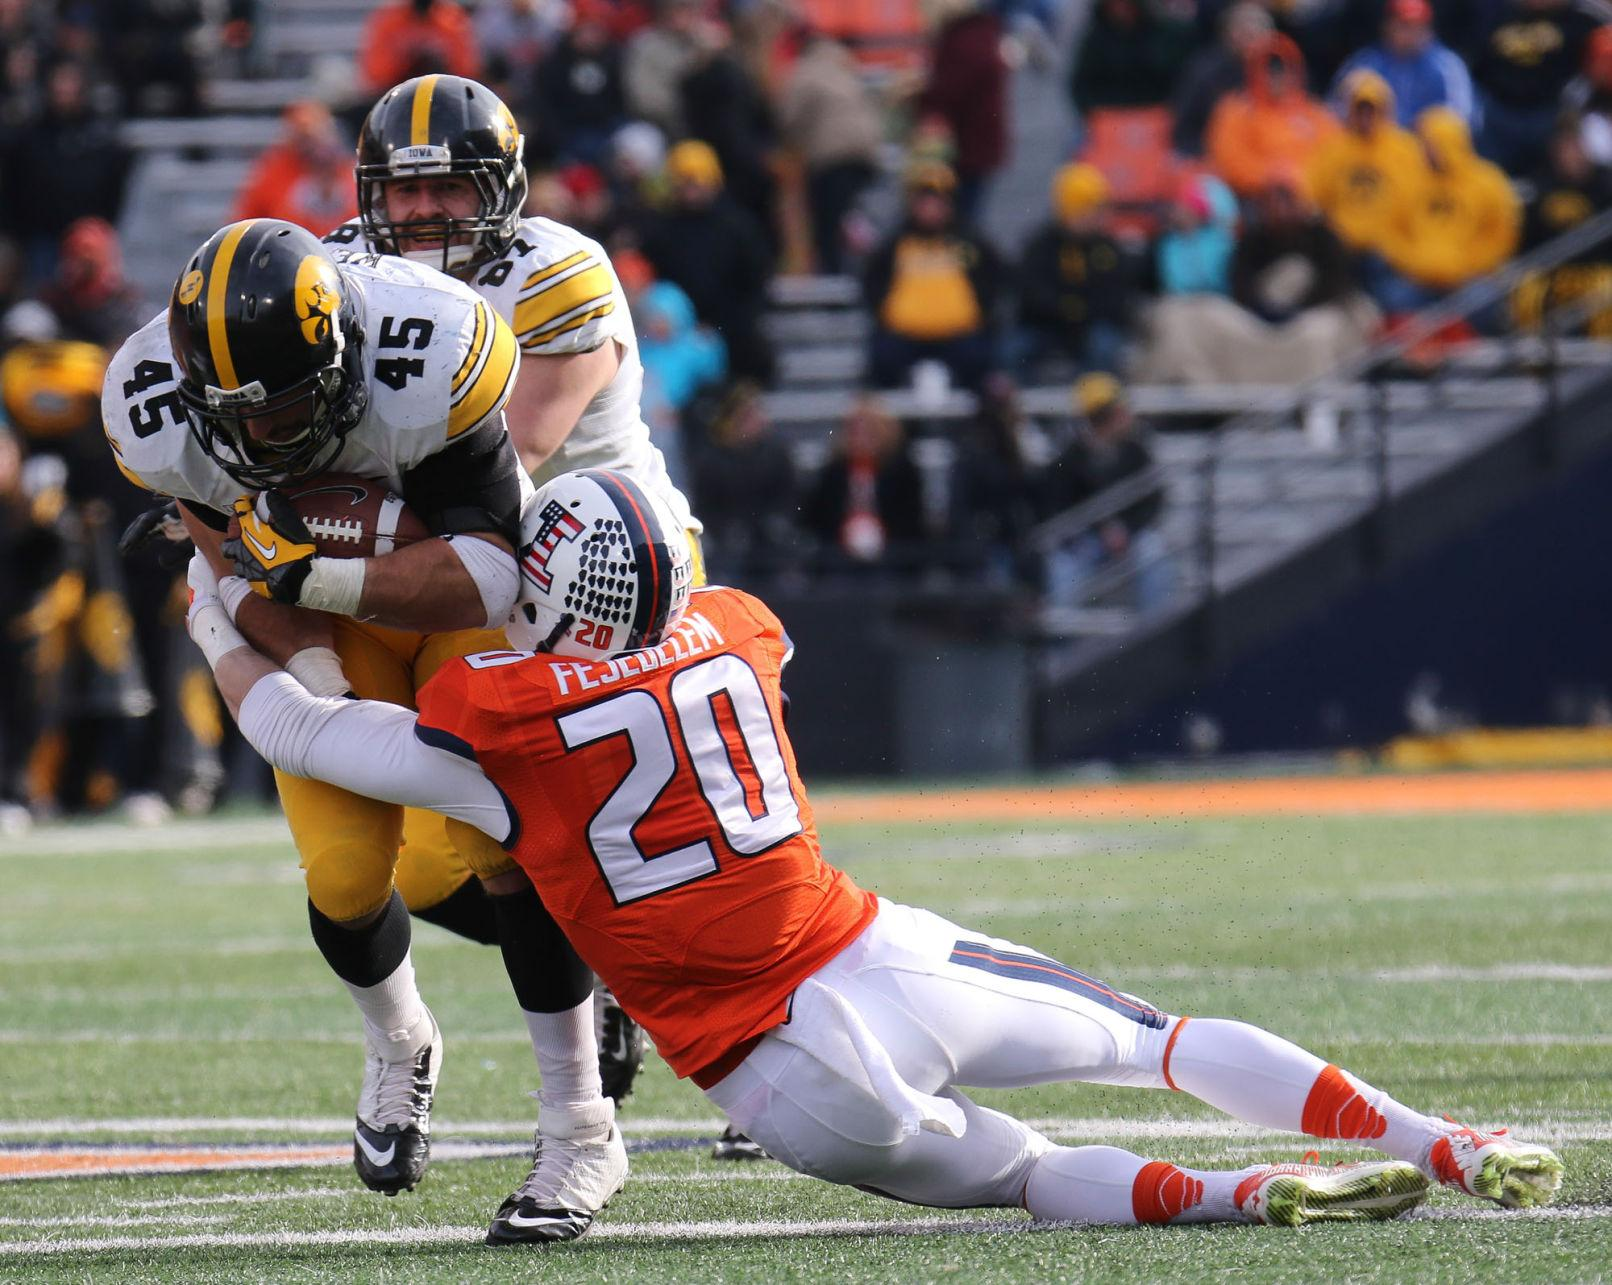 Illinois' Clayton Fejedelem (20) tackles Iowa's Mark Weisman (45) during the game against Iowa at Memorial Stadium, on Saturday, Nov. 15, 2014. The Illini lost 30-14.